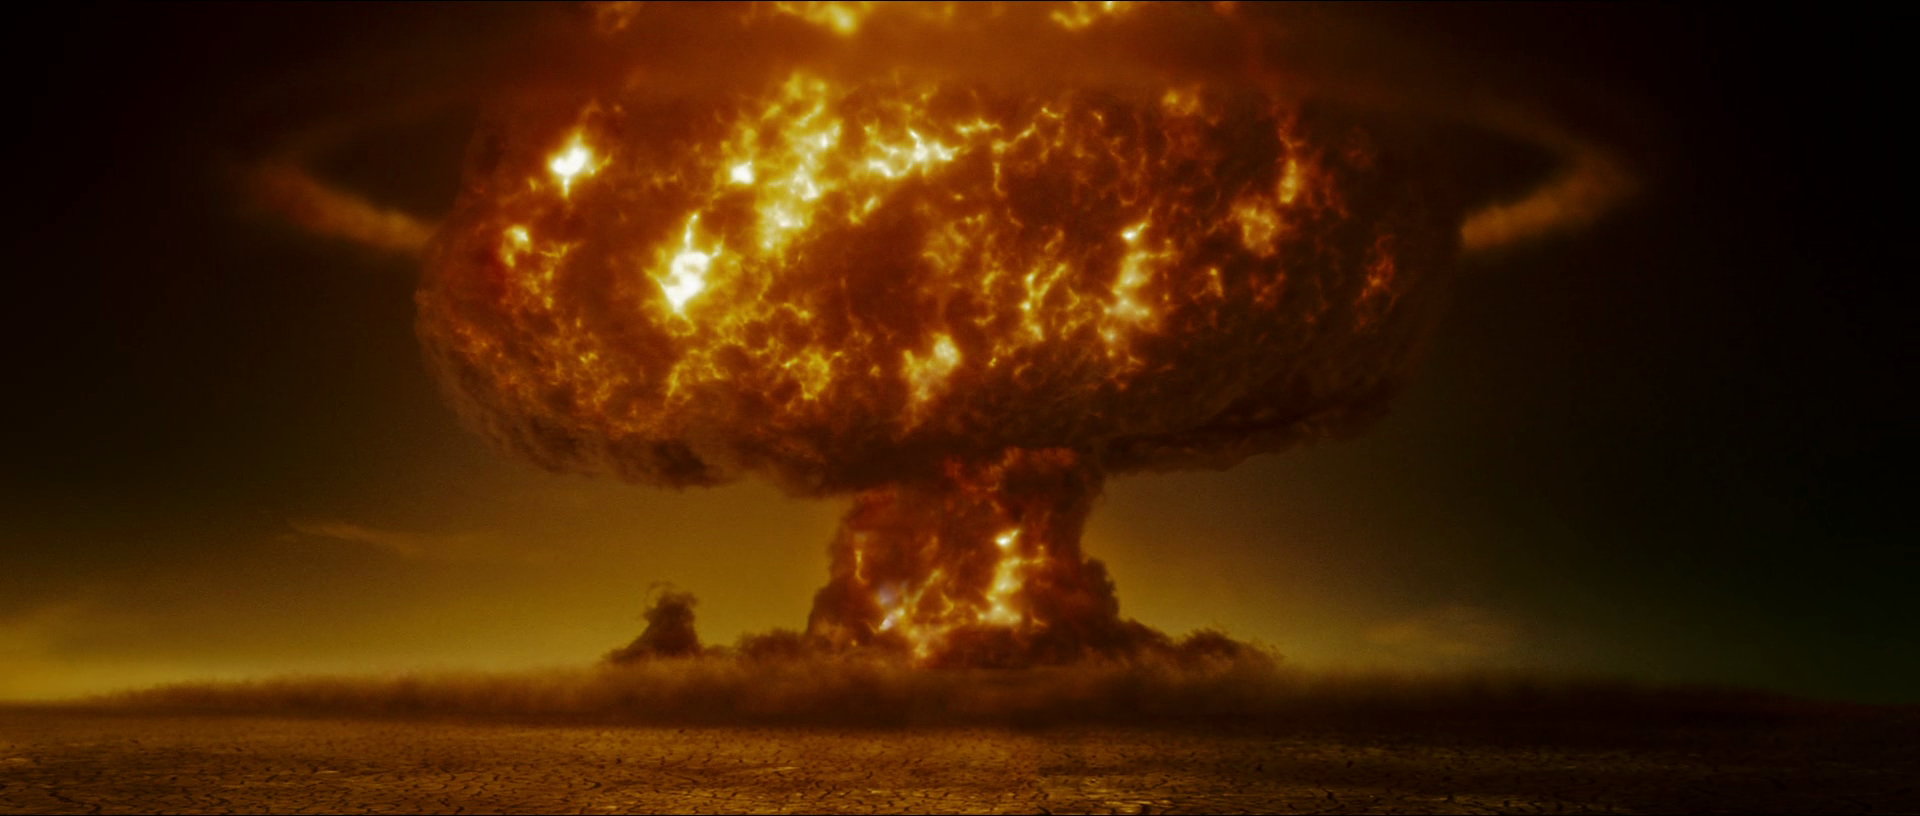 War bombs Nuclear explosions HD Wallpaper